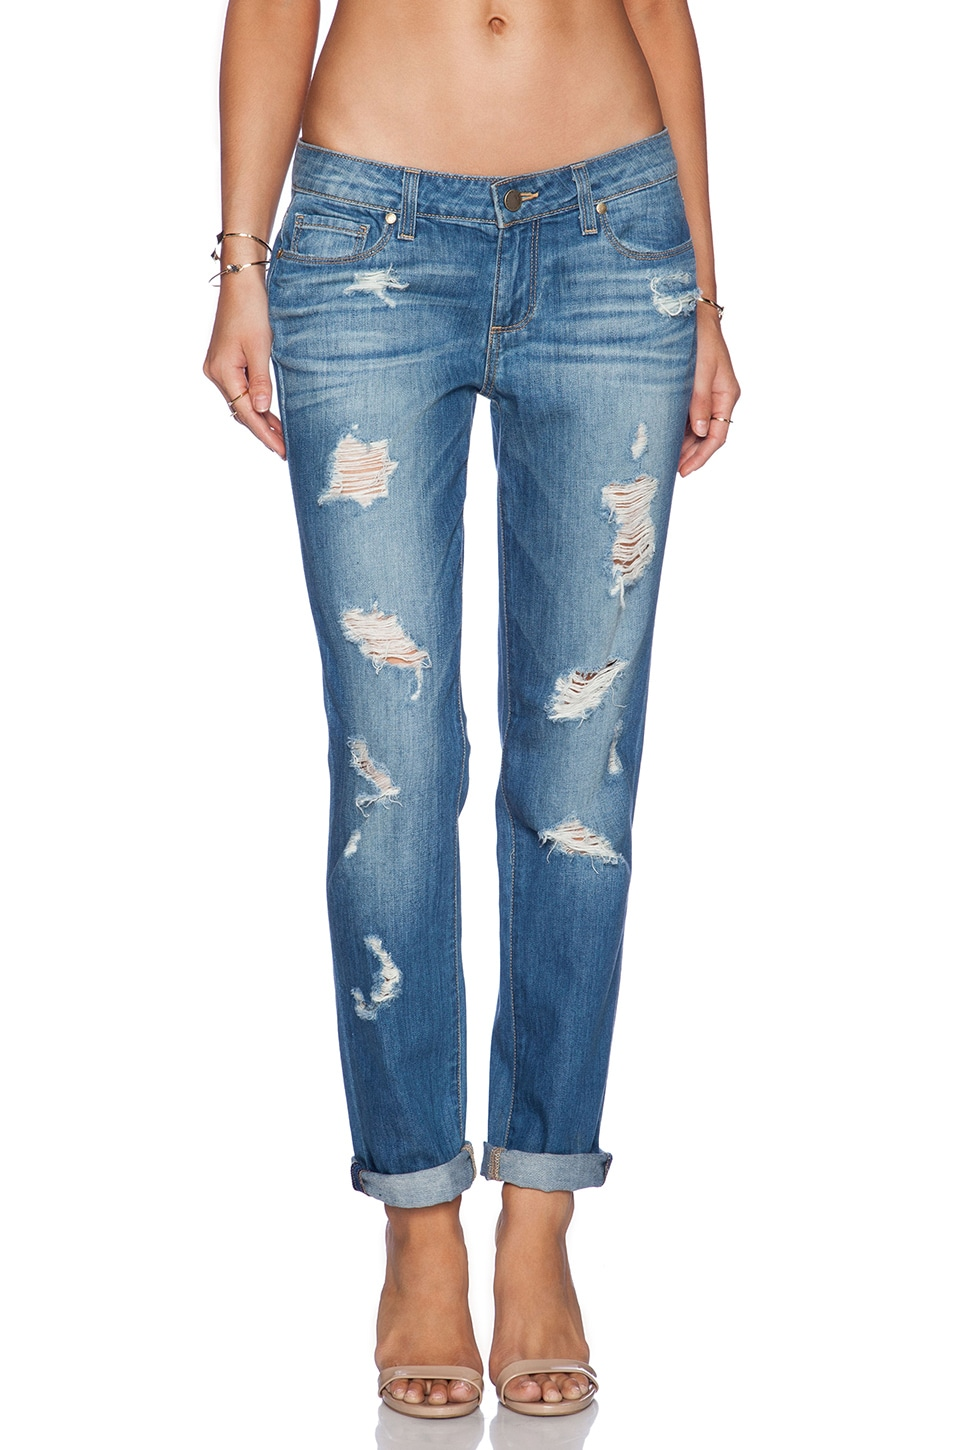 PAIGE Jimmy Jimmy Skinny in Delilah Destructed